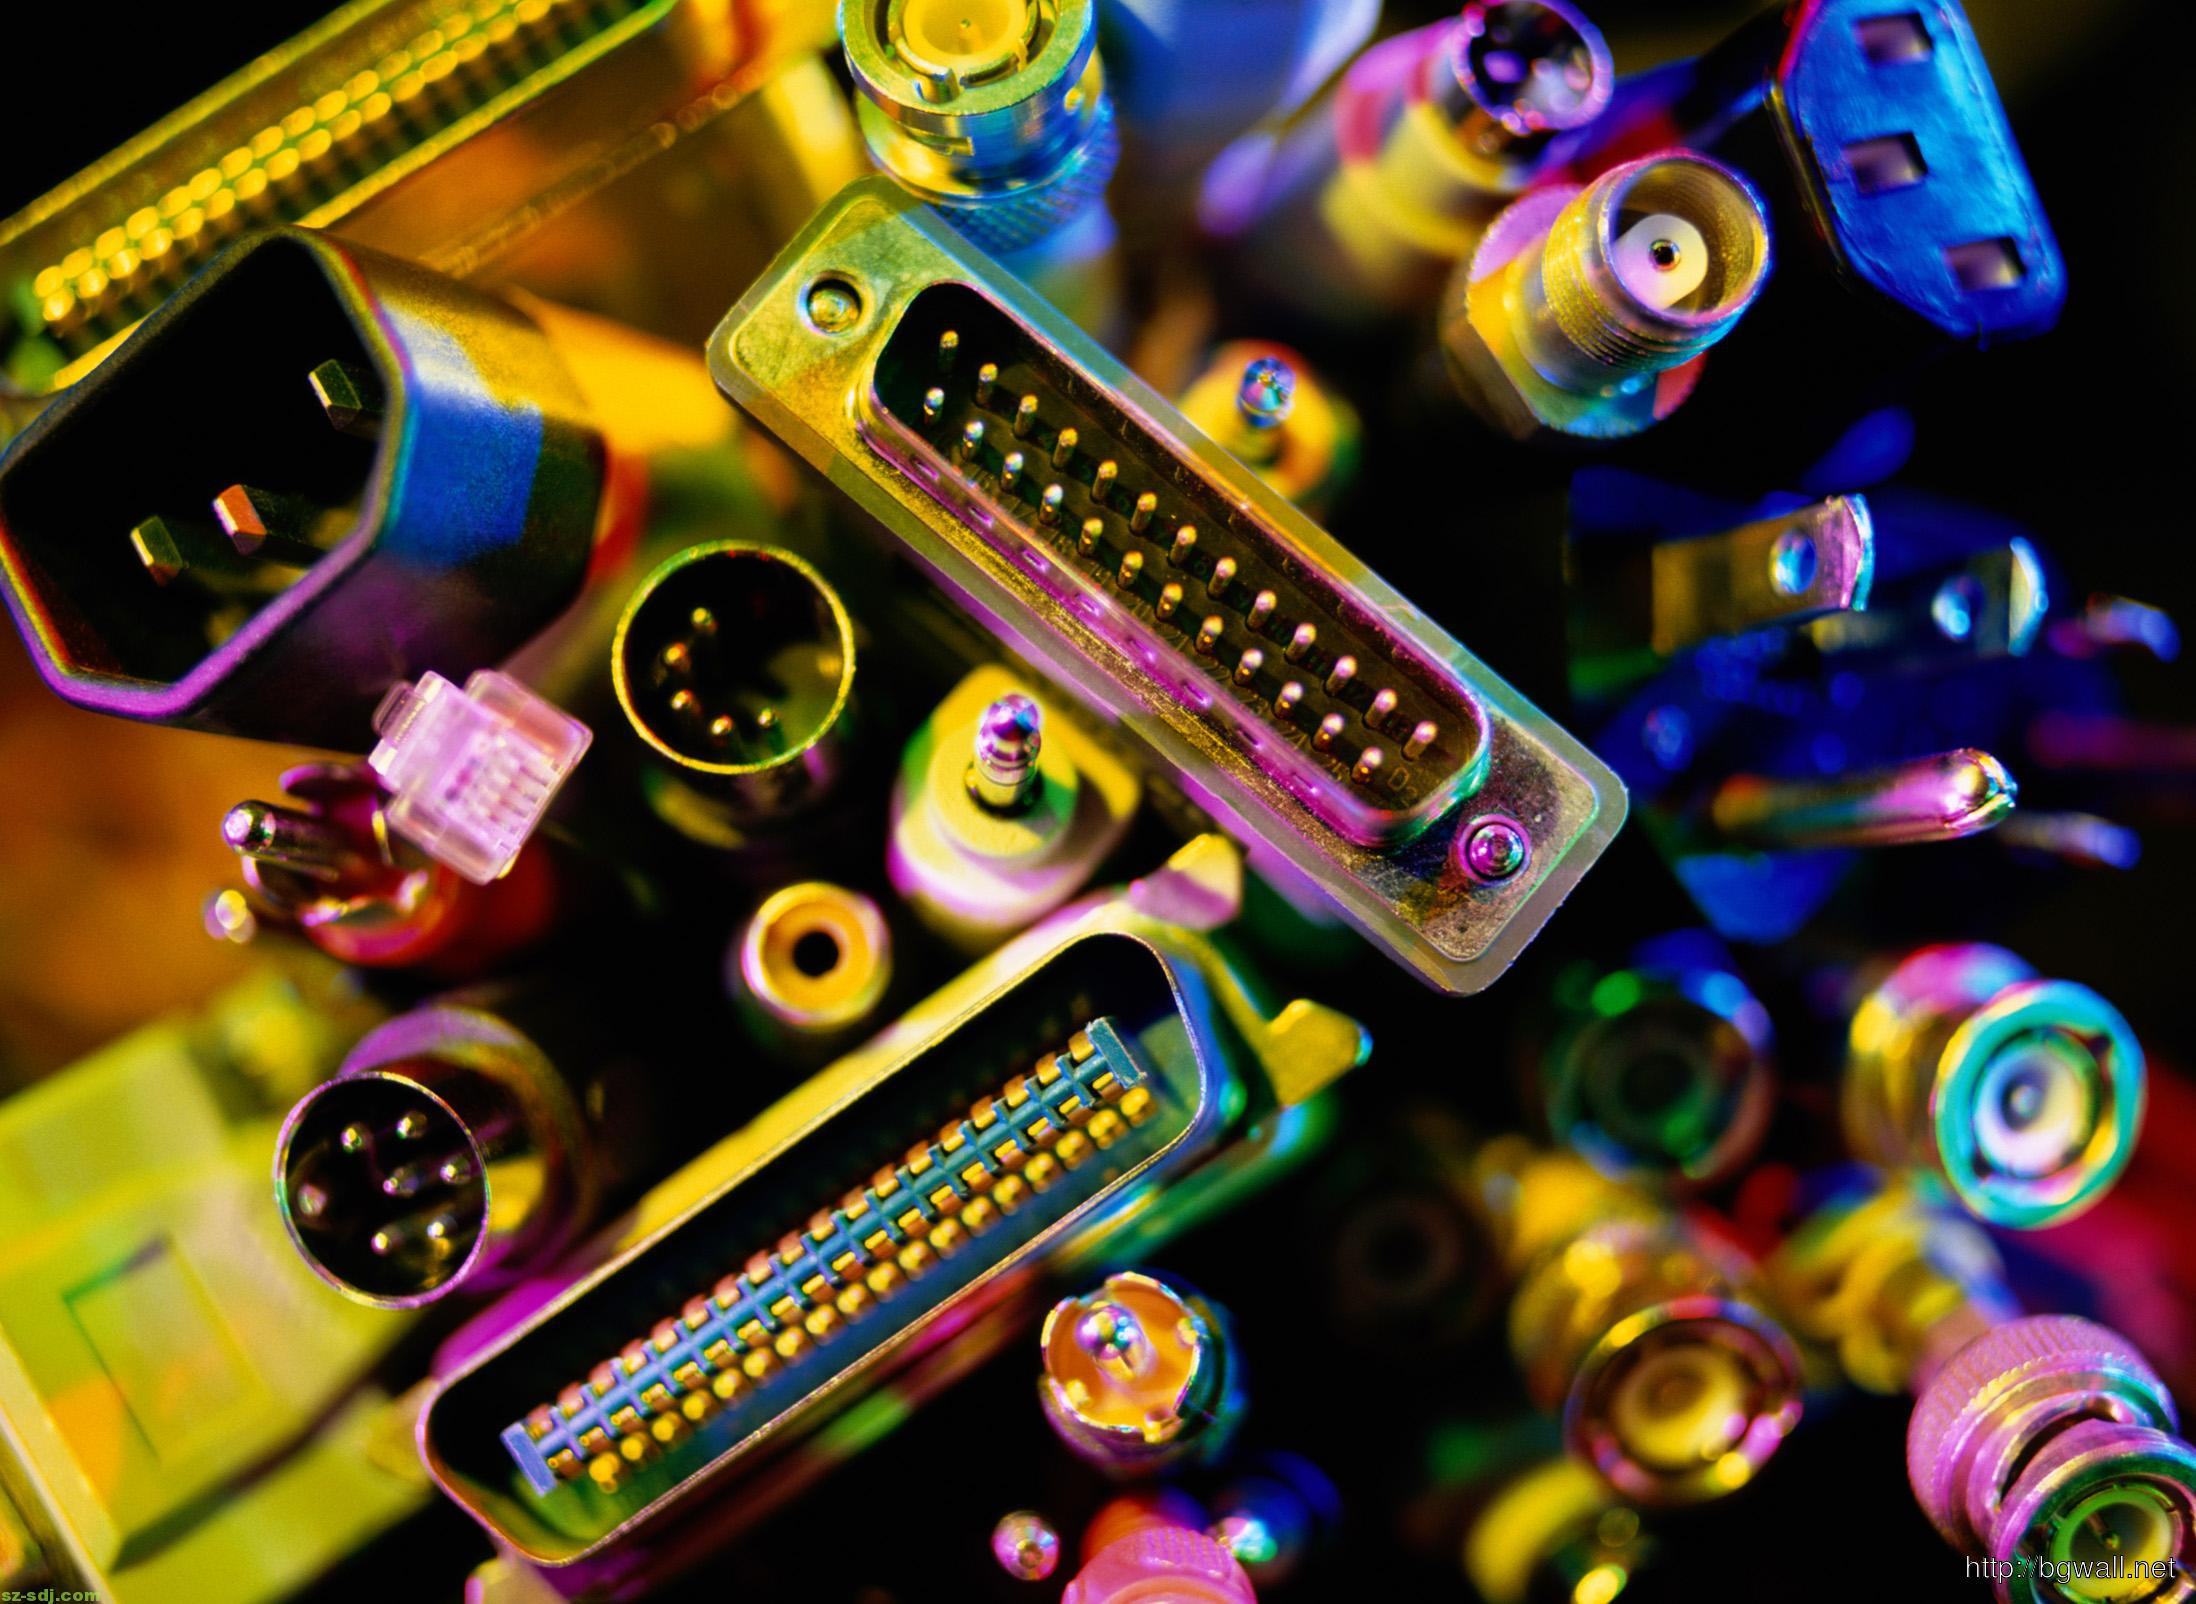 Circuits Cable And Electronics Computer Wallpaper